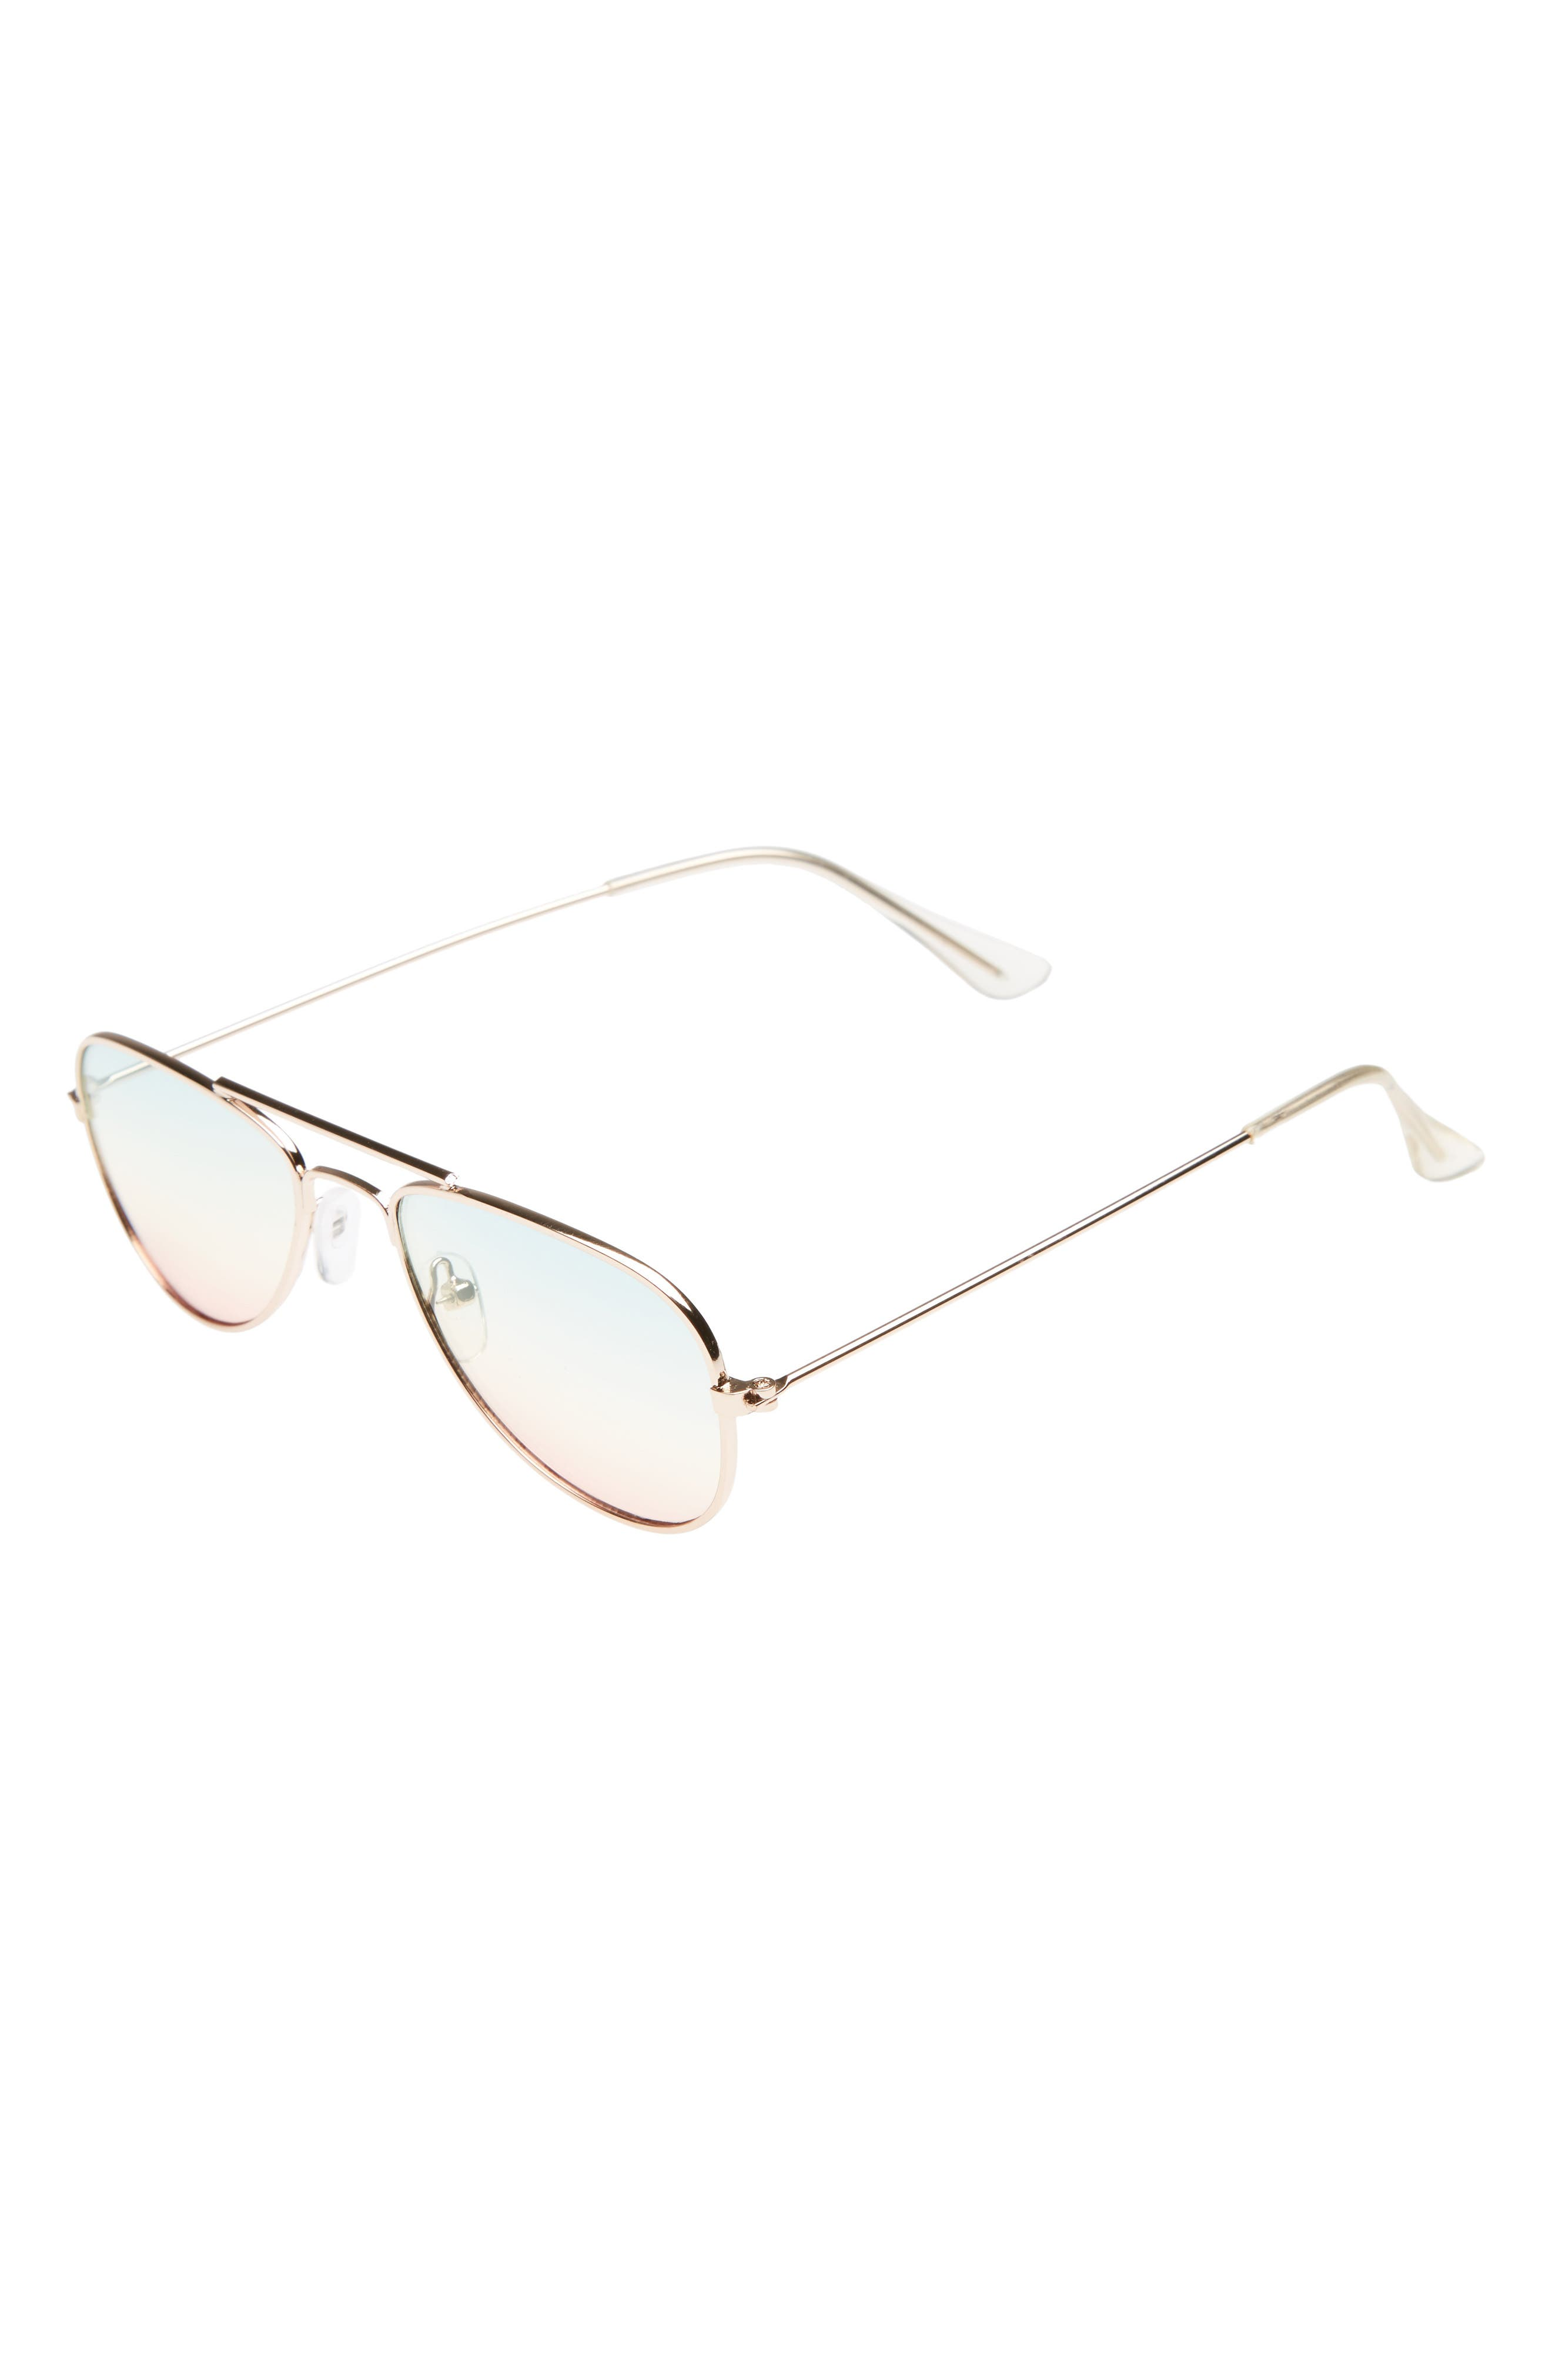 Starlight Accessories Rainbow Aviator Sunglasses